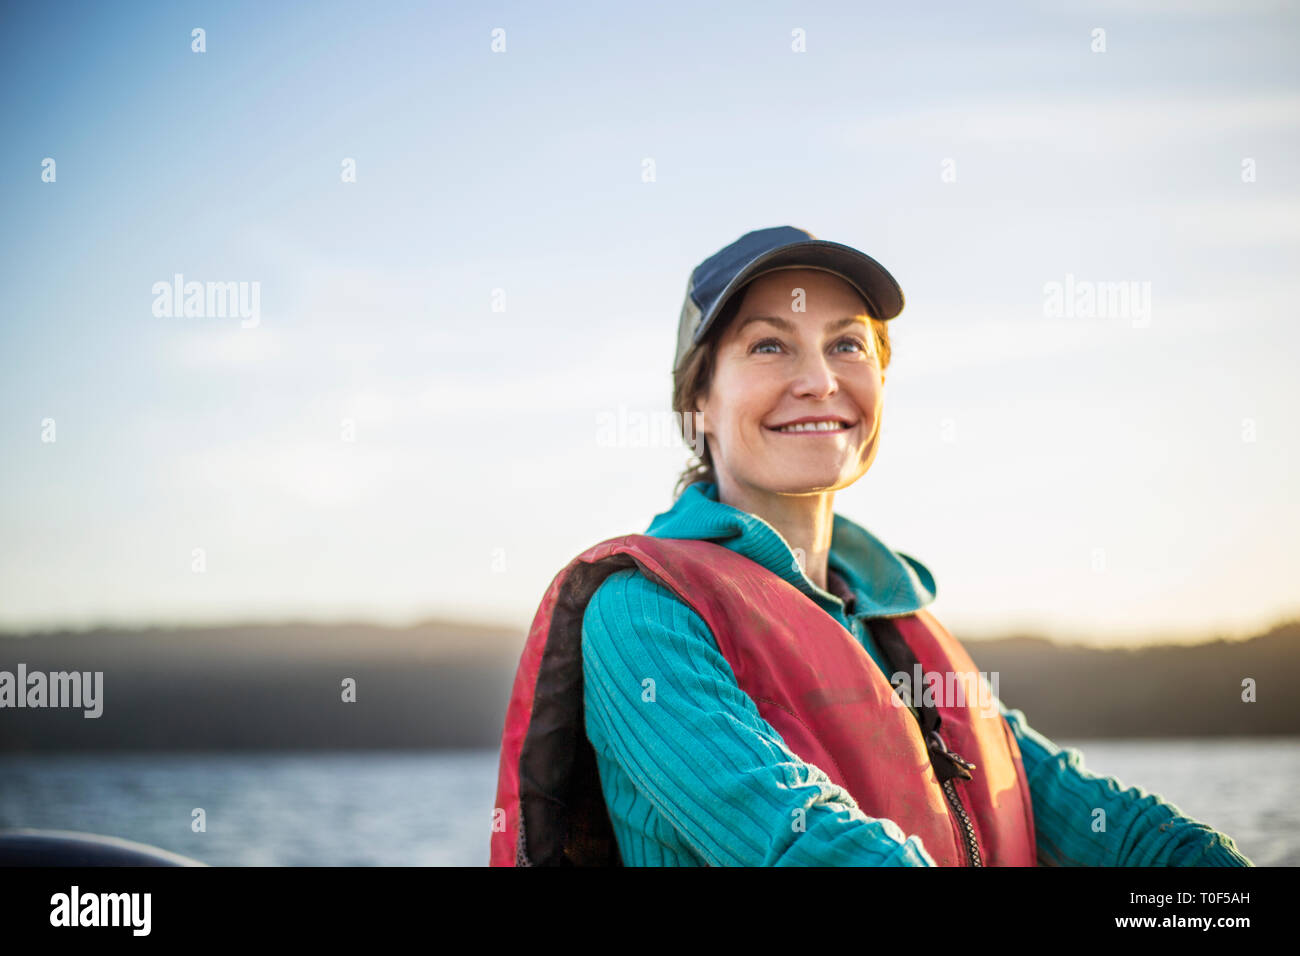 Smiling mid adult woman on boat. Stock Photo